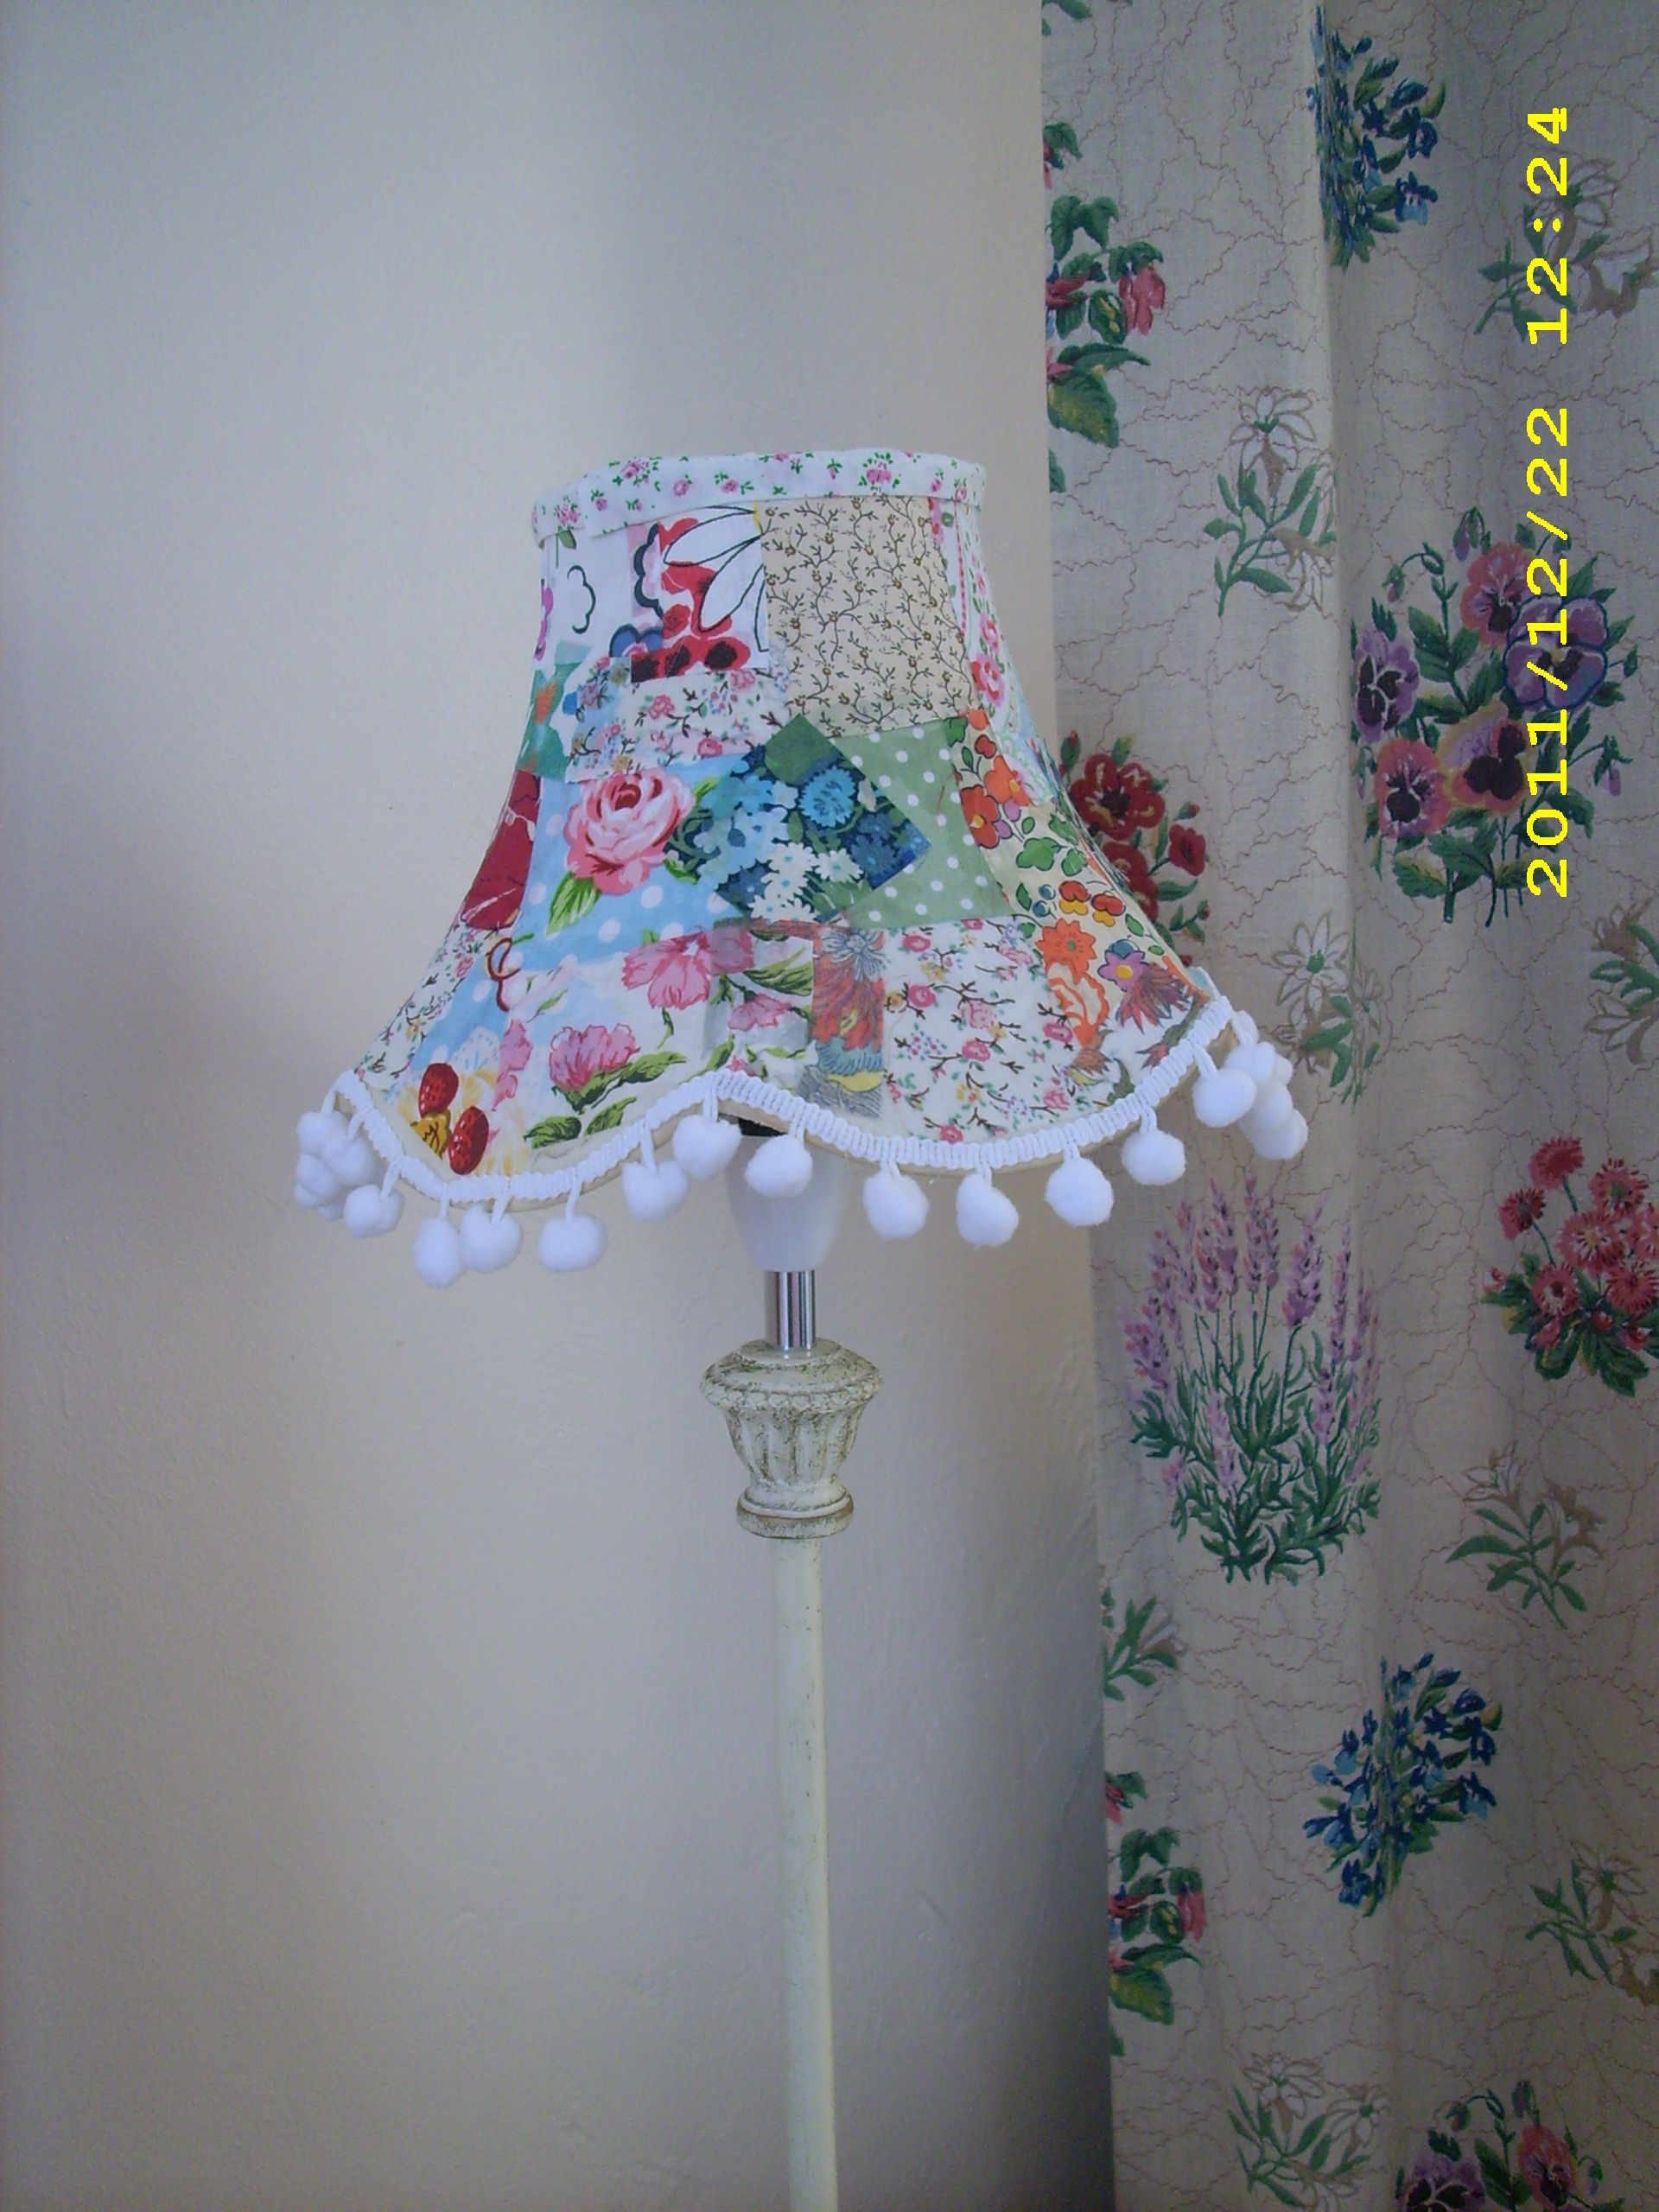 DIY Patchwork Lampshade: Using fabric scraps & mod podge ...